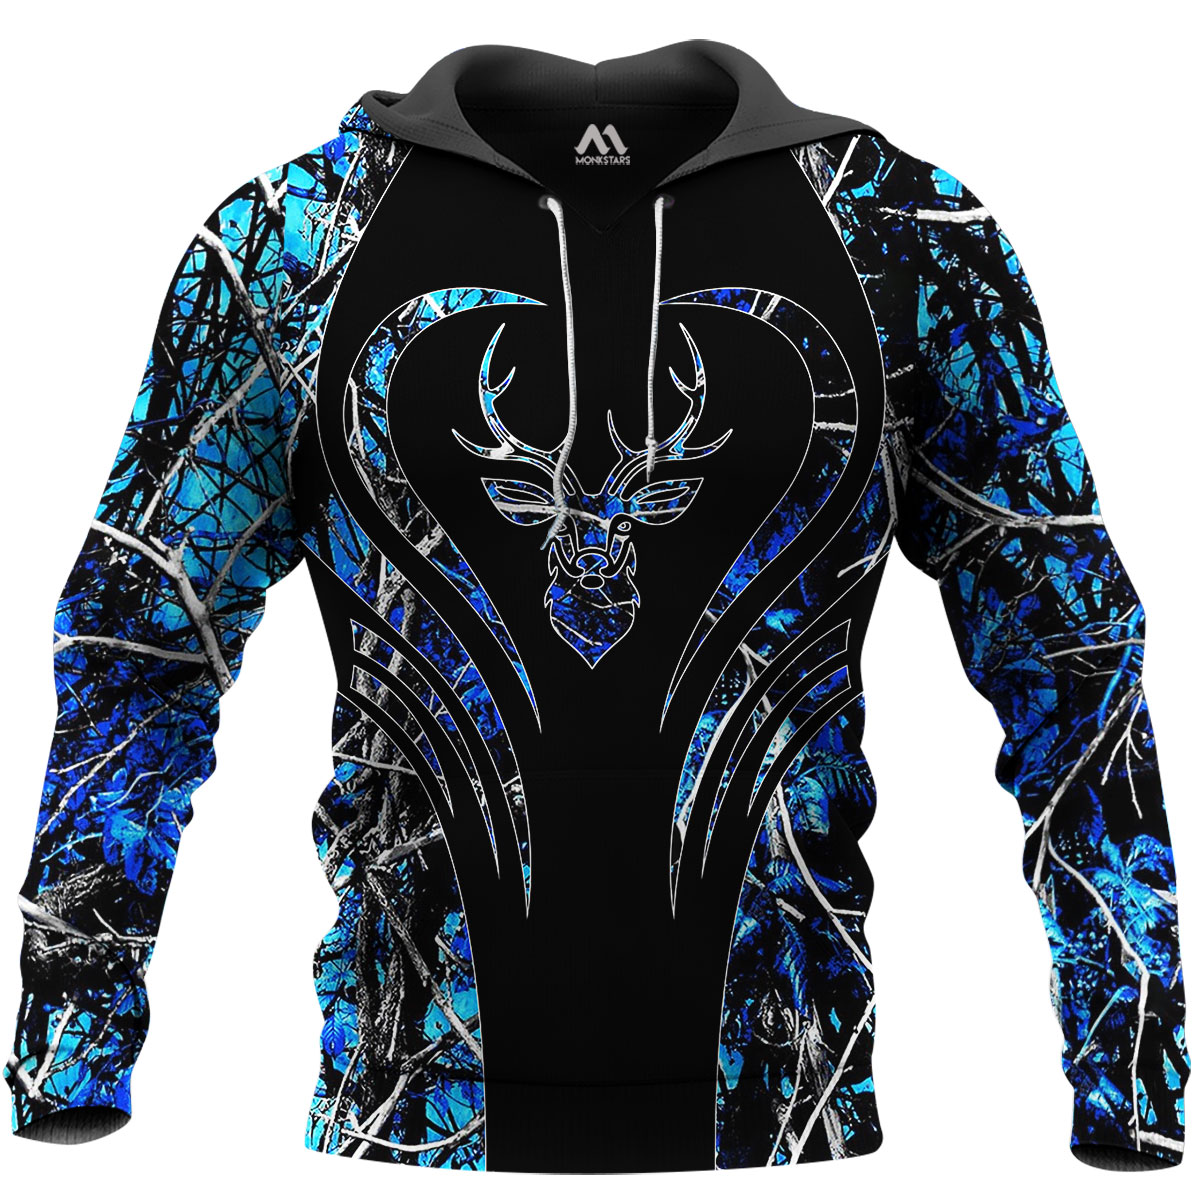 Deer Hunting Camo 3D All Over Printed Shirts for Men and Women 9